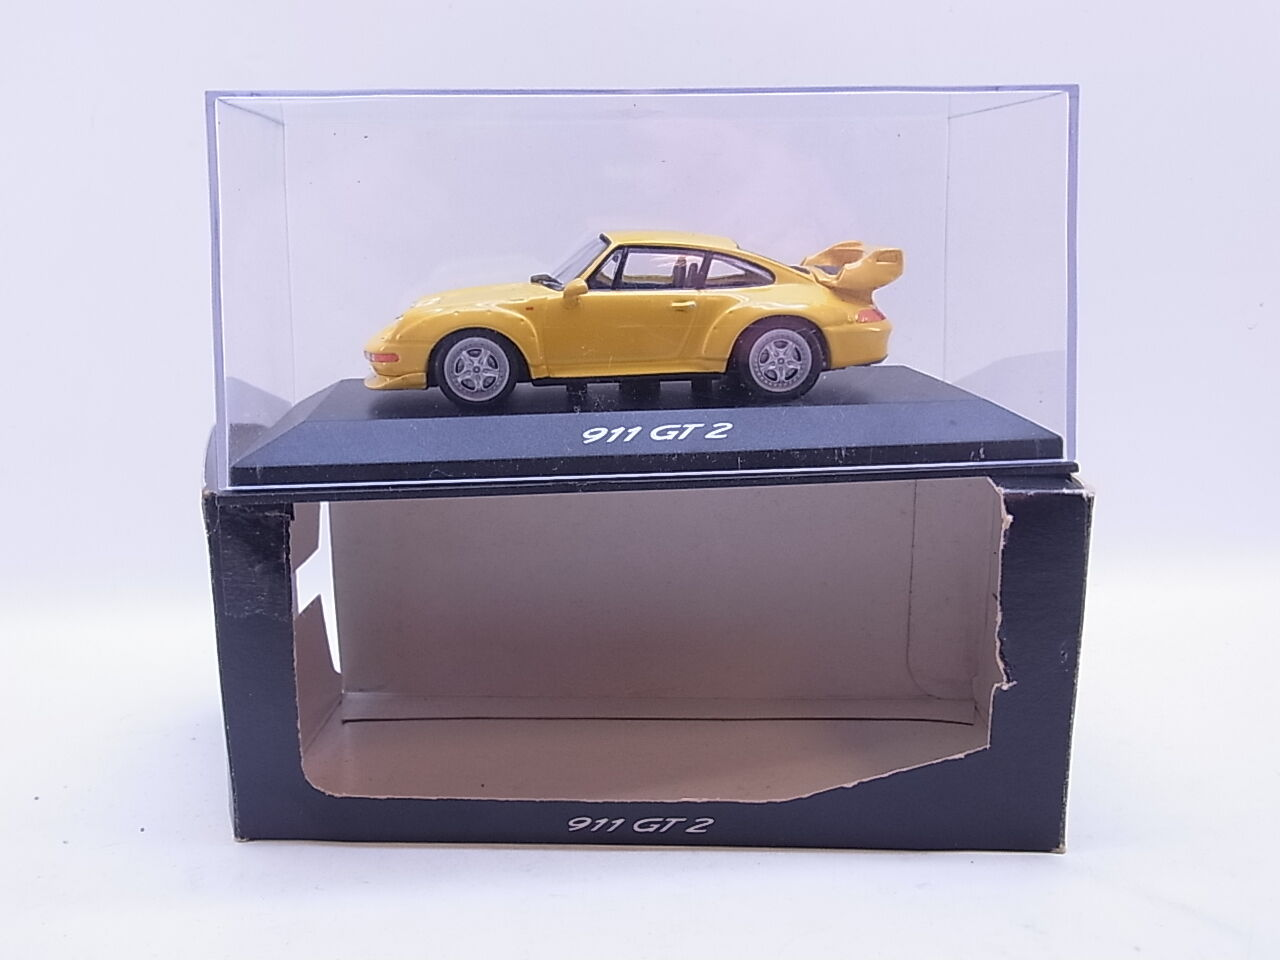 LOT 40699 Minichamps Minichamps Minichamps Porsche 911 GT2 Typ 993 yellow Modellauto 1 43 in OVP 3b1a24